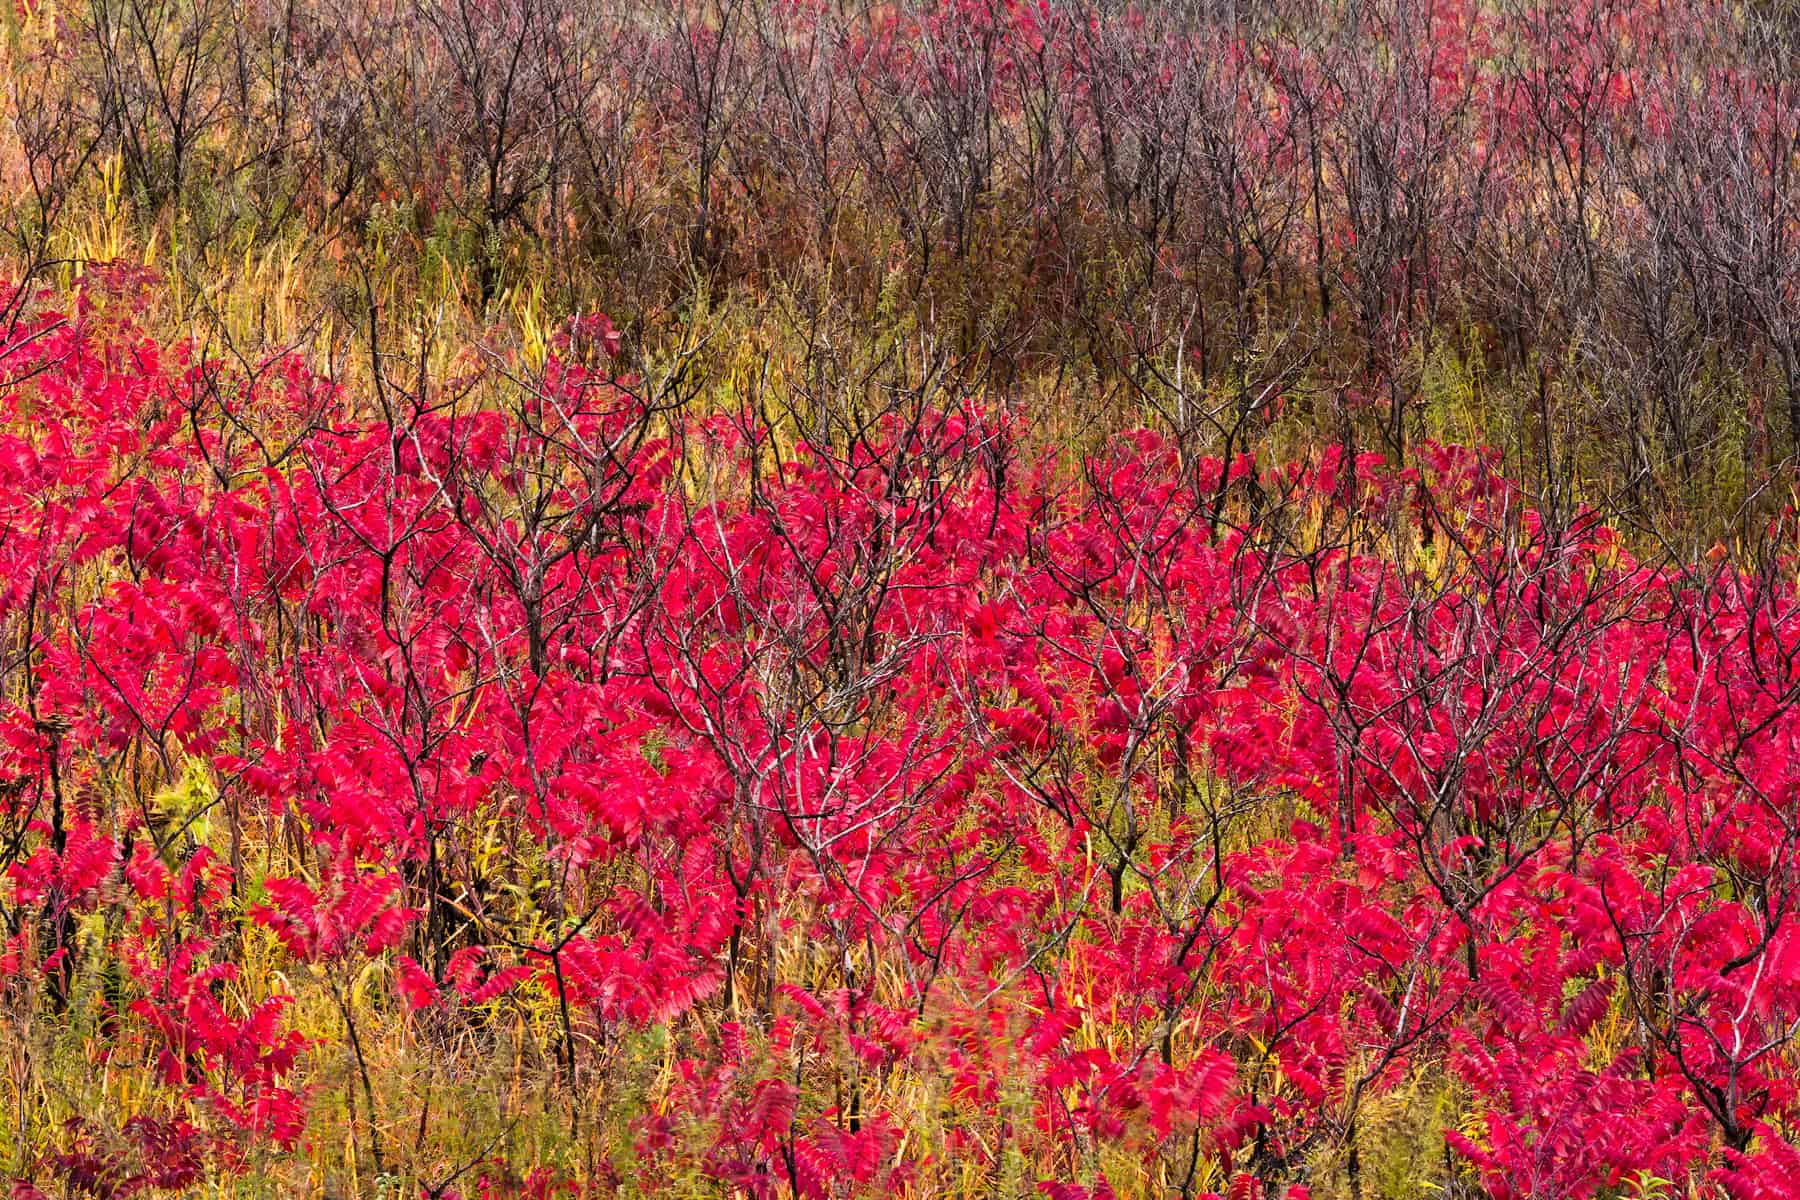 Flames Of The Sumac - FLFA_8492